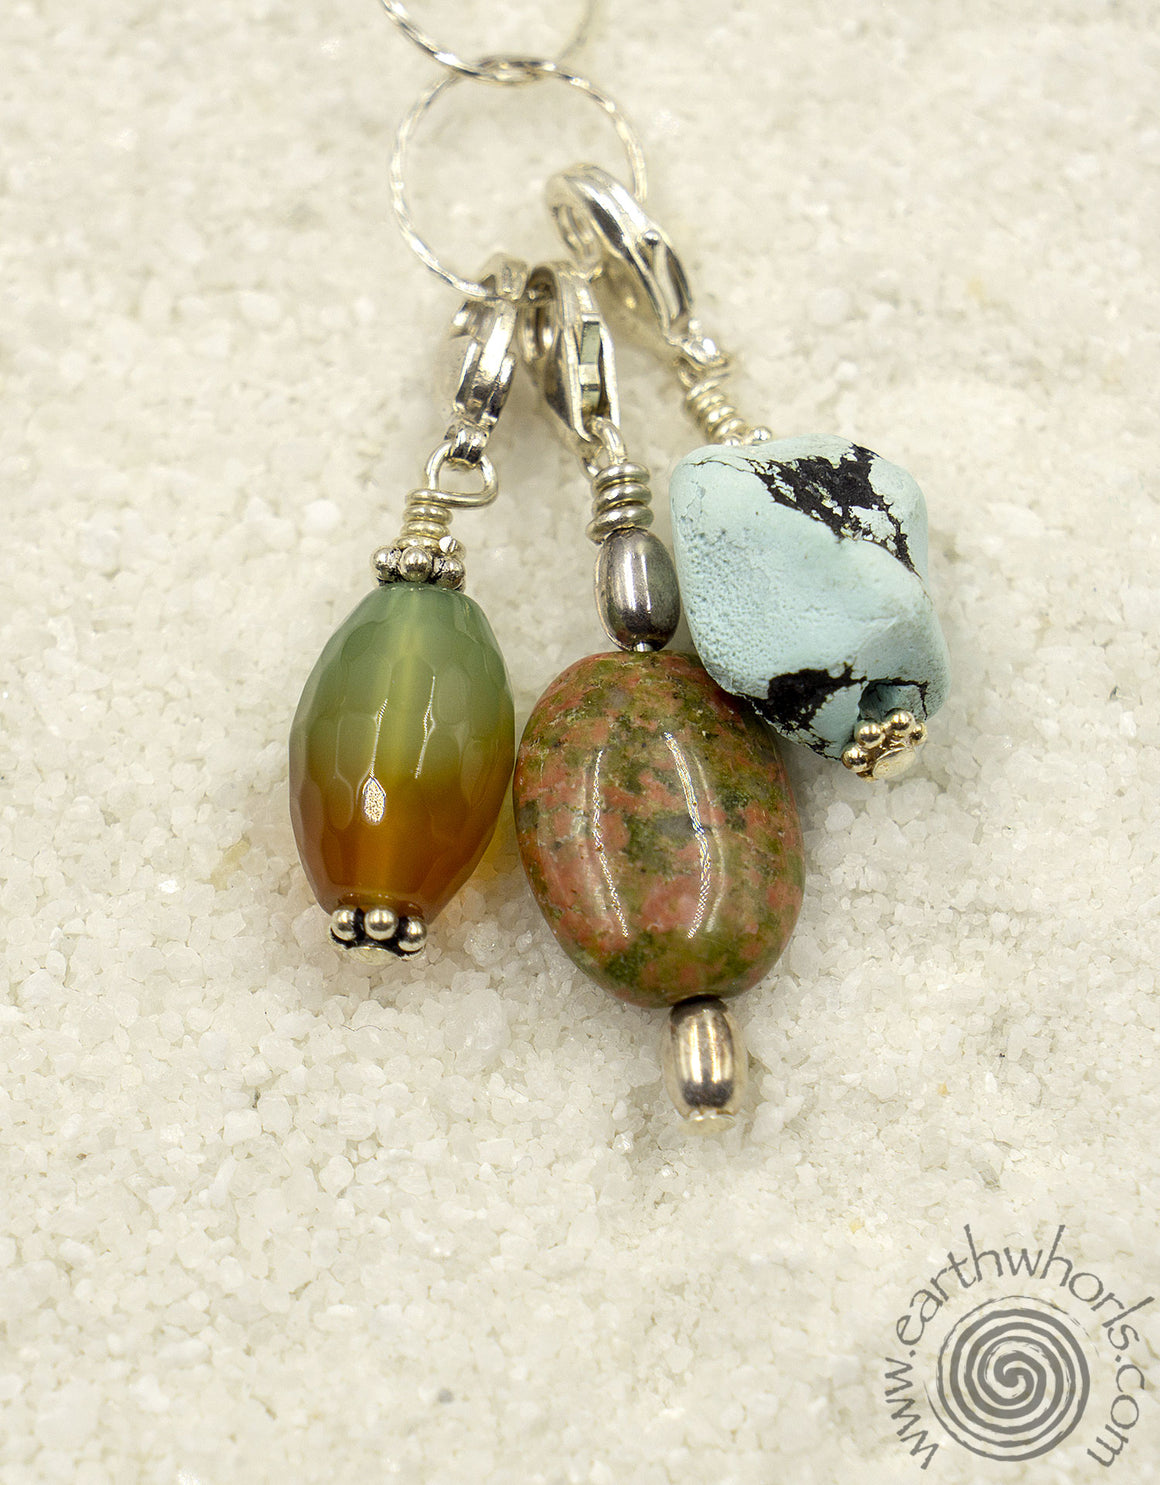 Mixed Stone Pendant & Sterling Silver Necklace - EarthWhorls, LLC